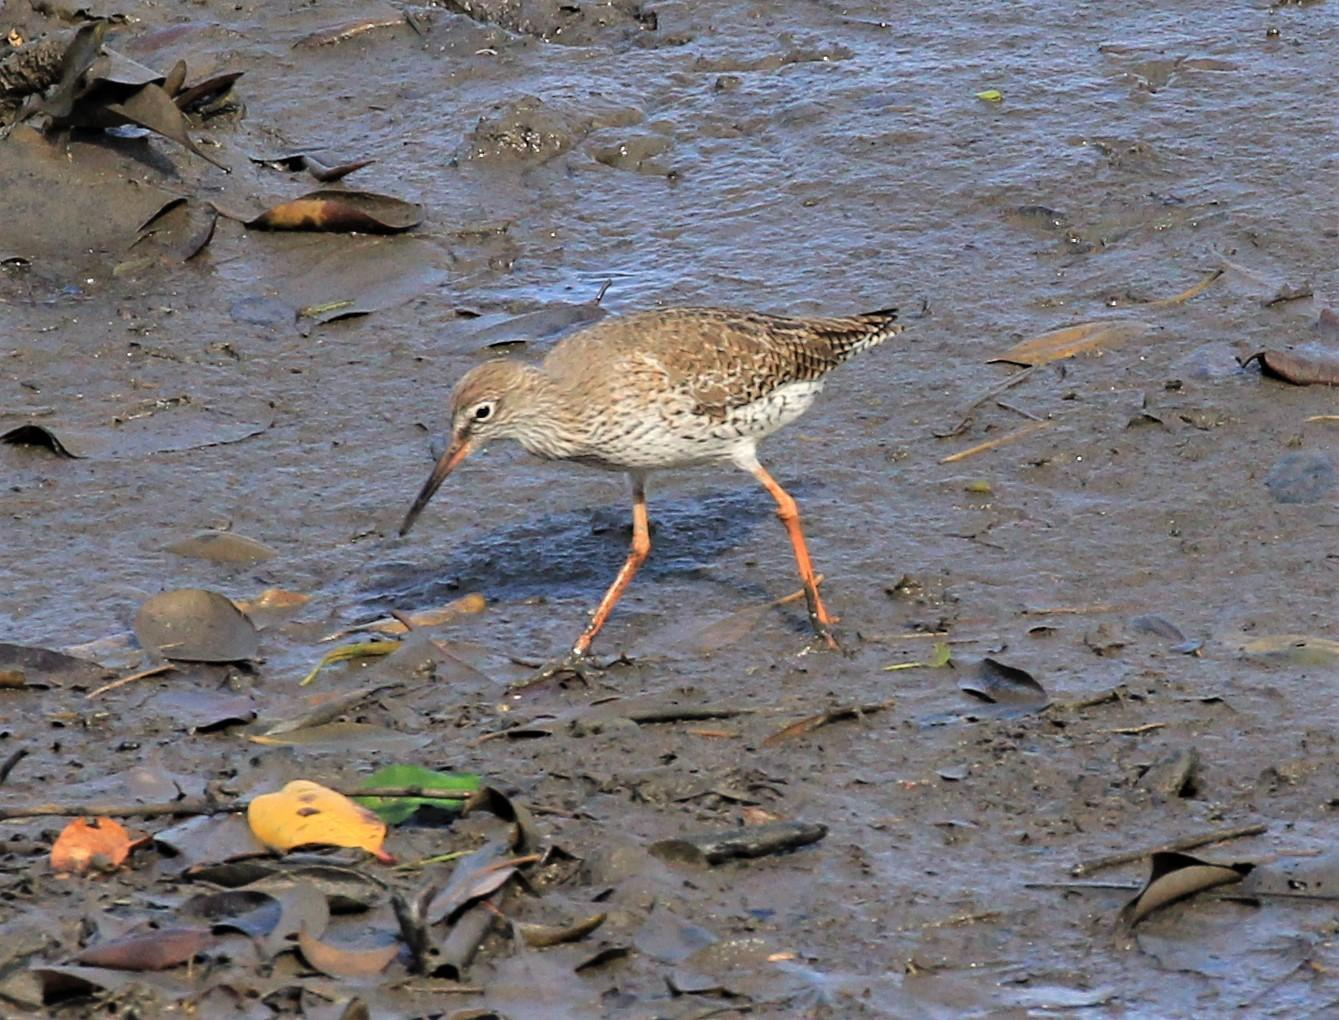 Common Redshank Photo by Steven Cheong